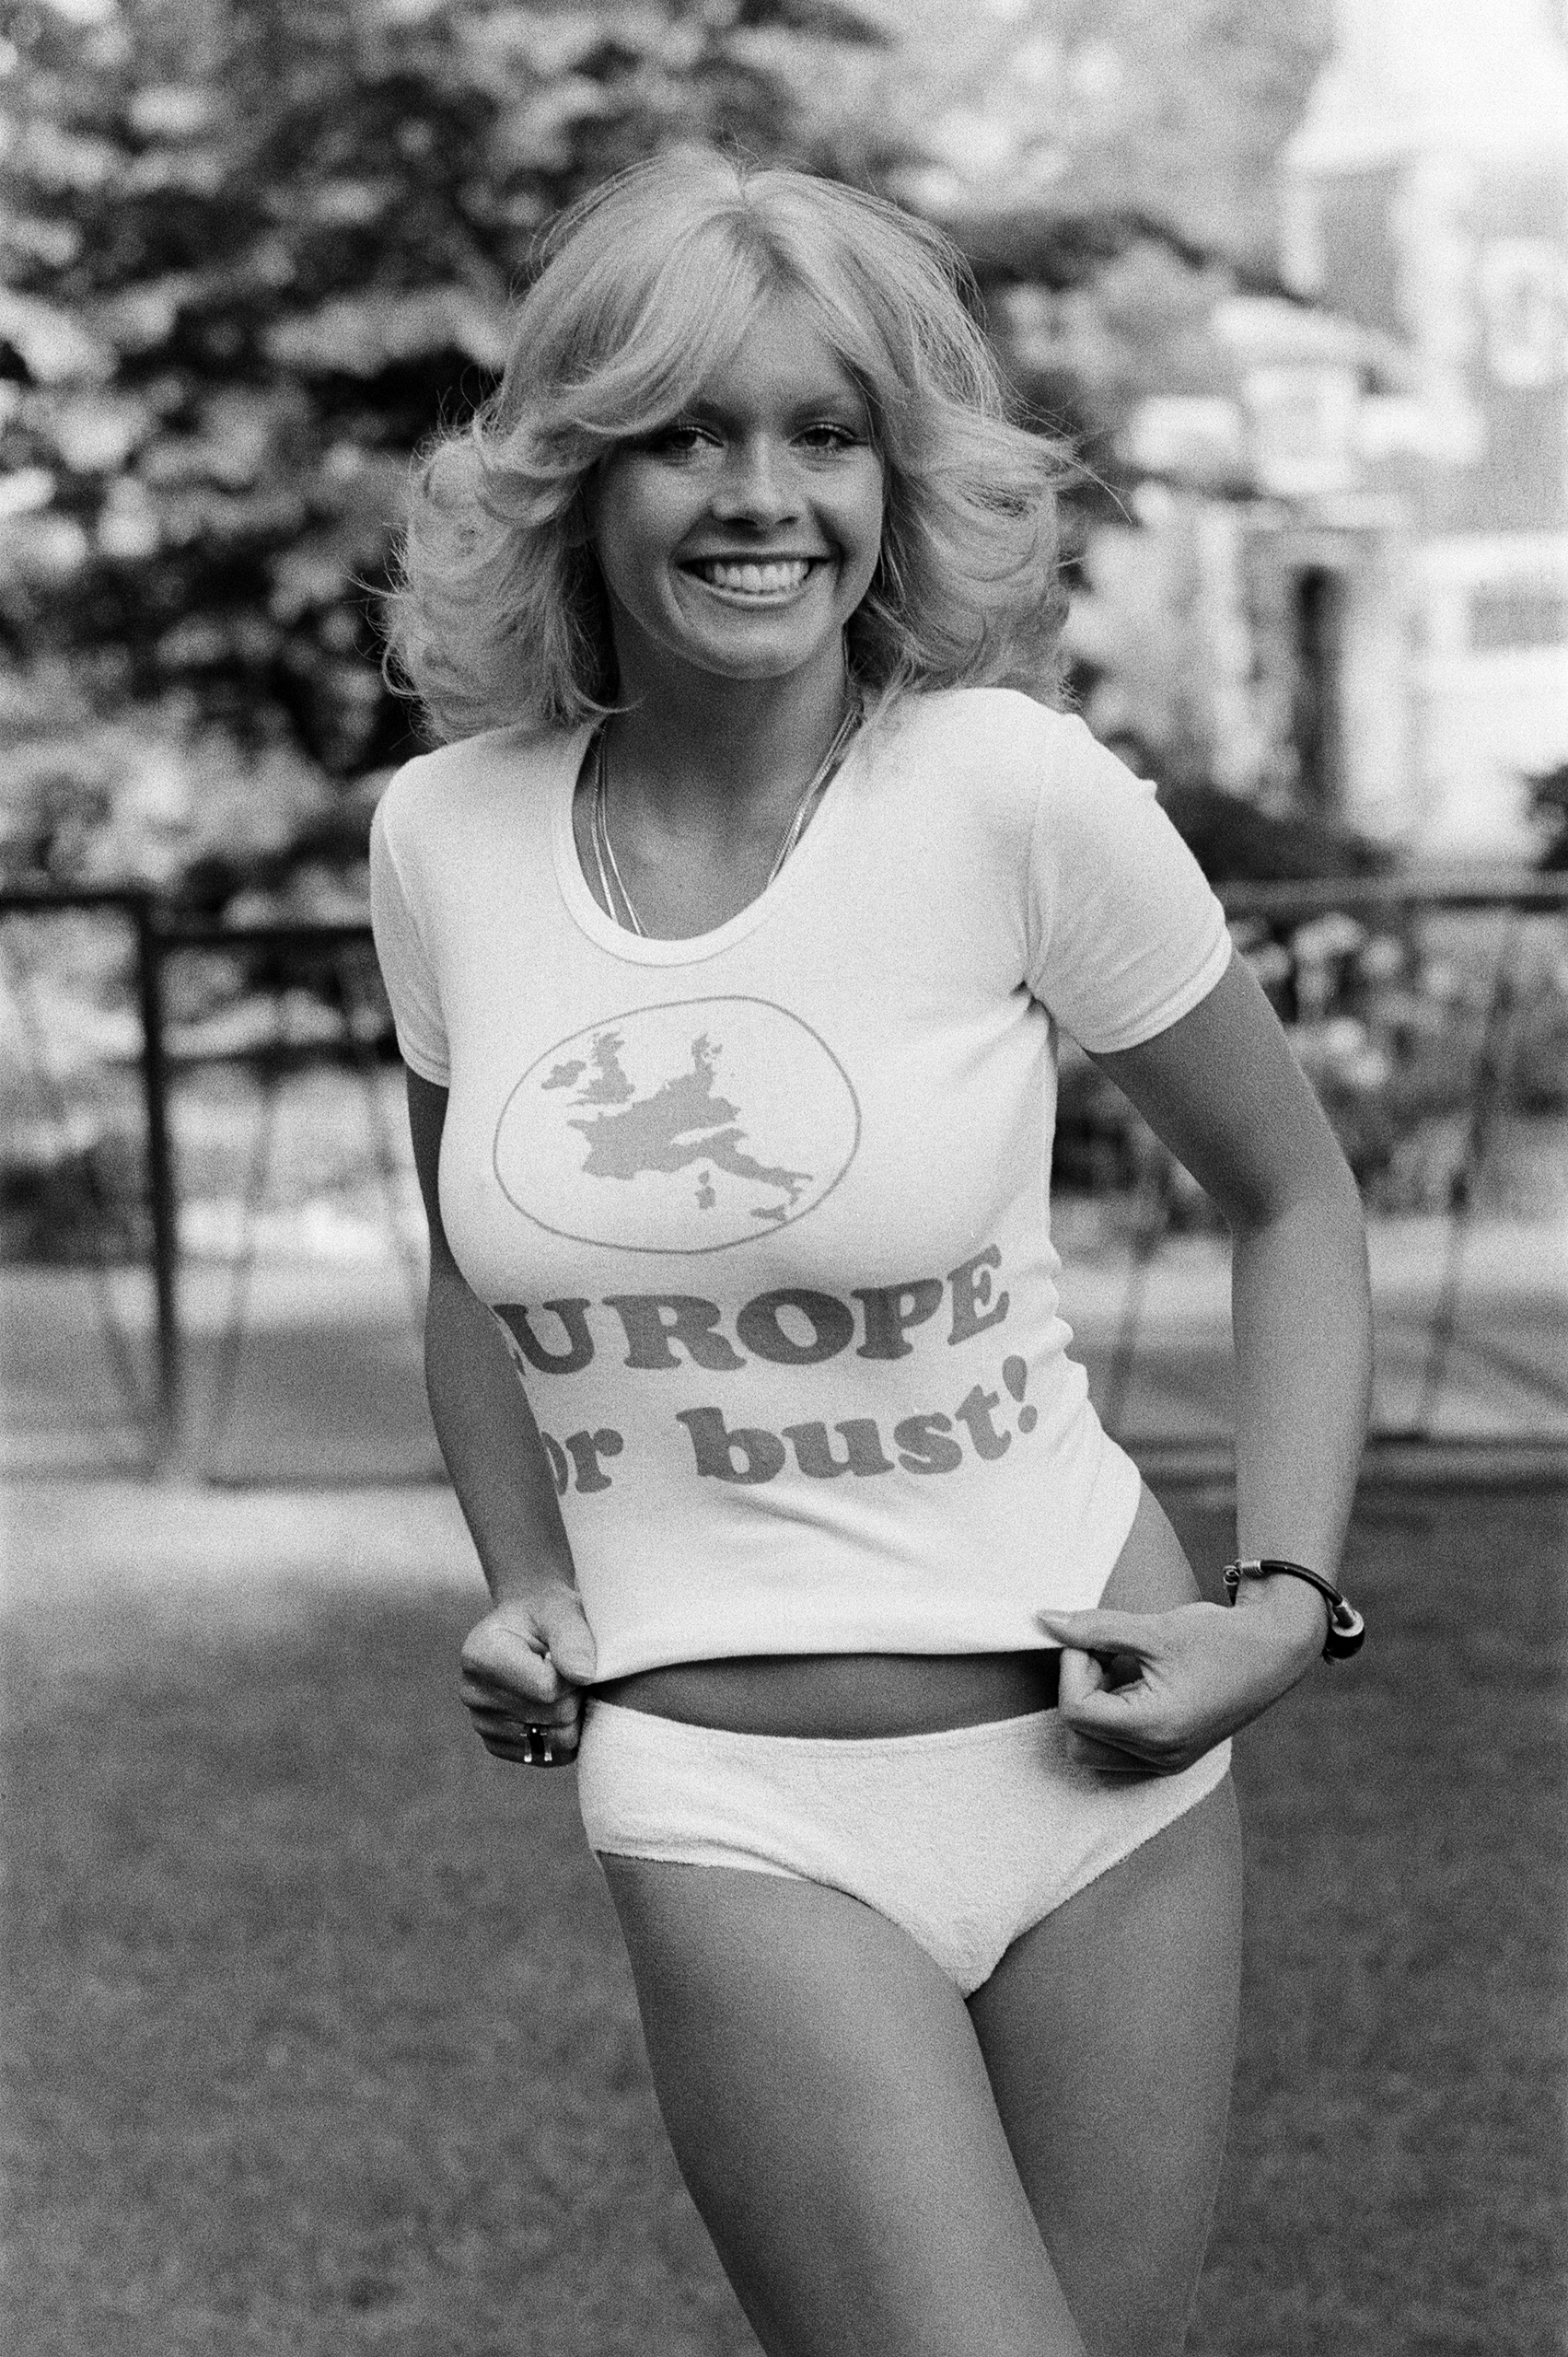 Beverley Pilkington, 22 year old model from Essex, wearing Pro Europe white tee shirt with the slogan, Europe or bust! May 19, 1975.